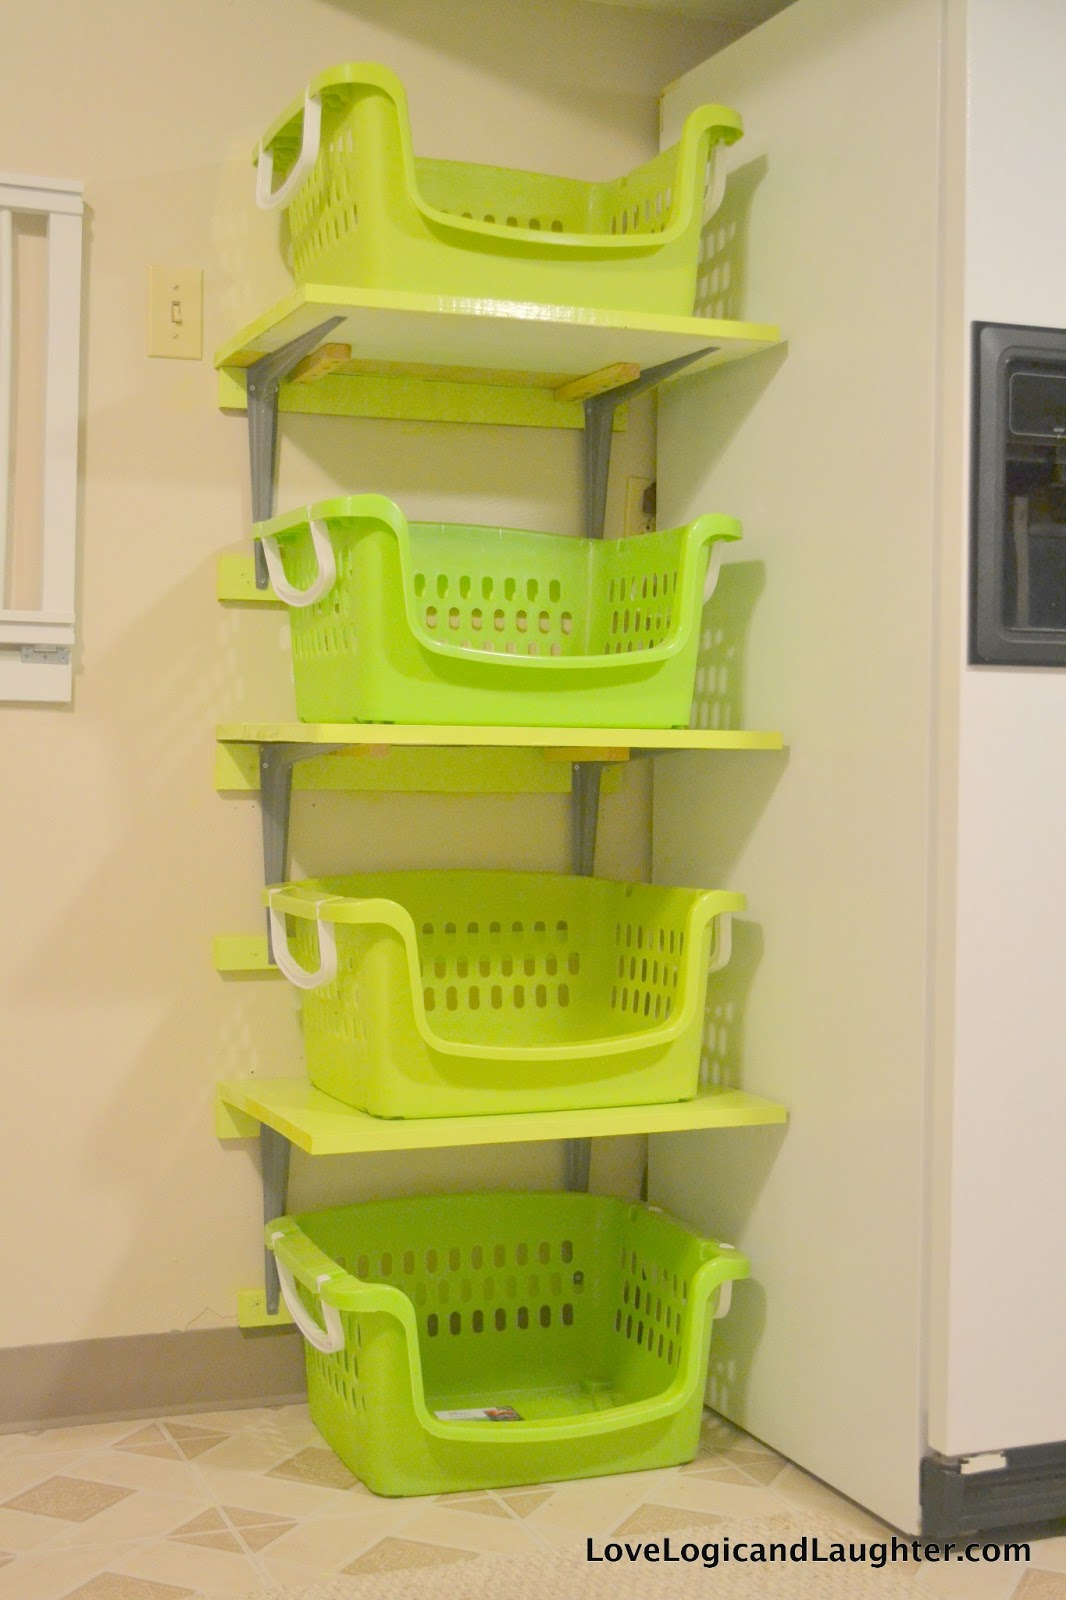 Laundry Basket With Shelves Logic And Laughter Shelves For Laundry Baskets Diy